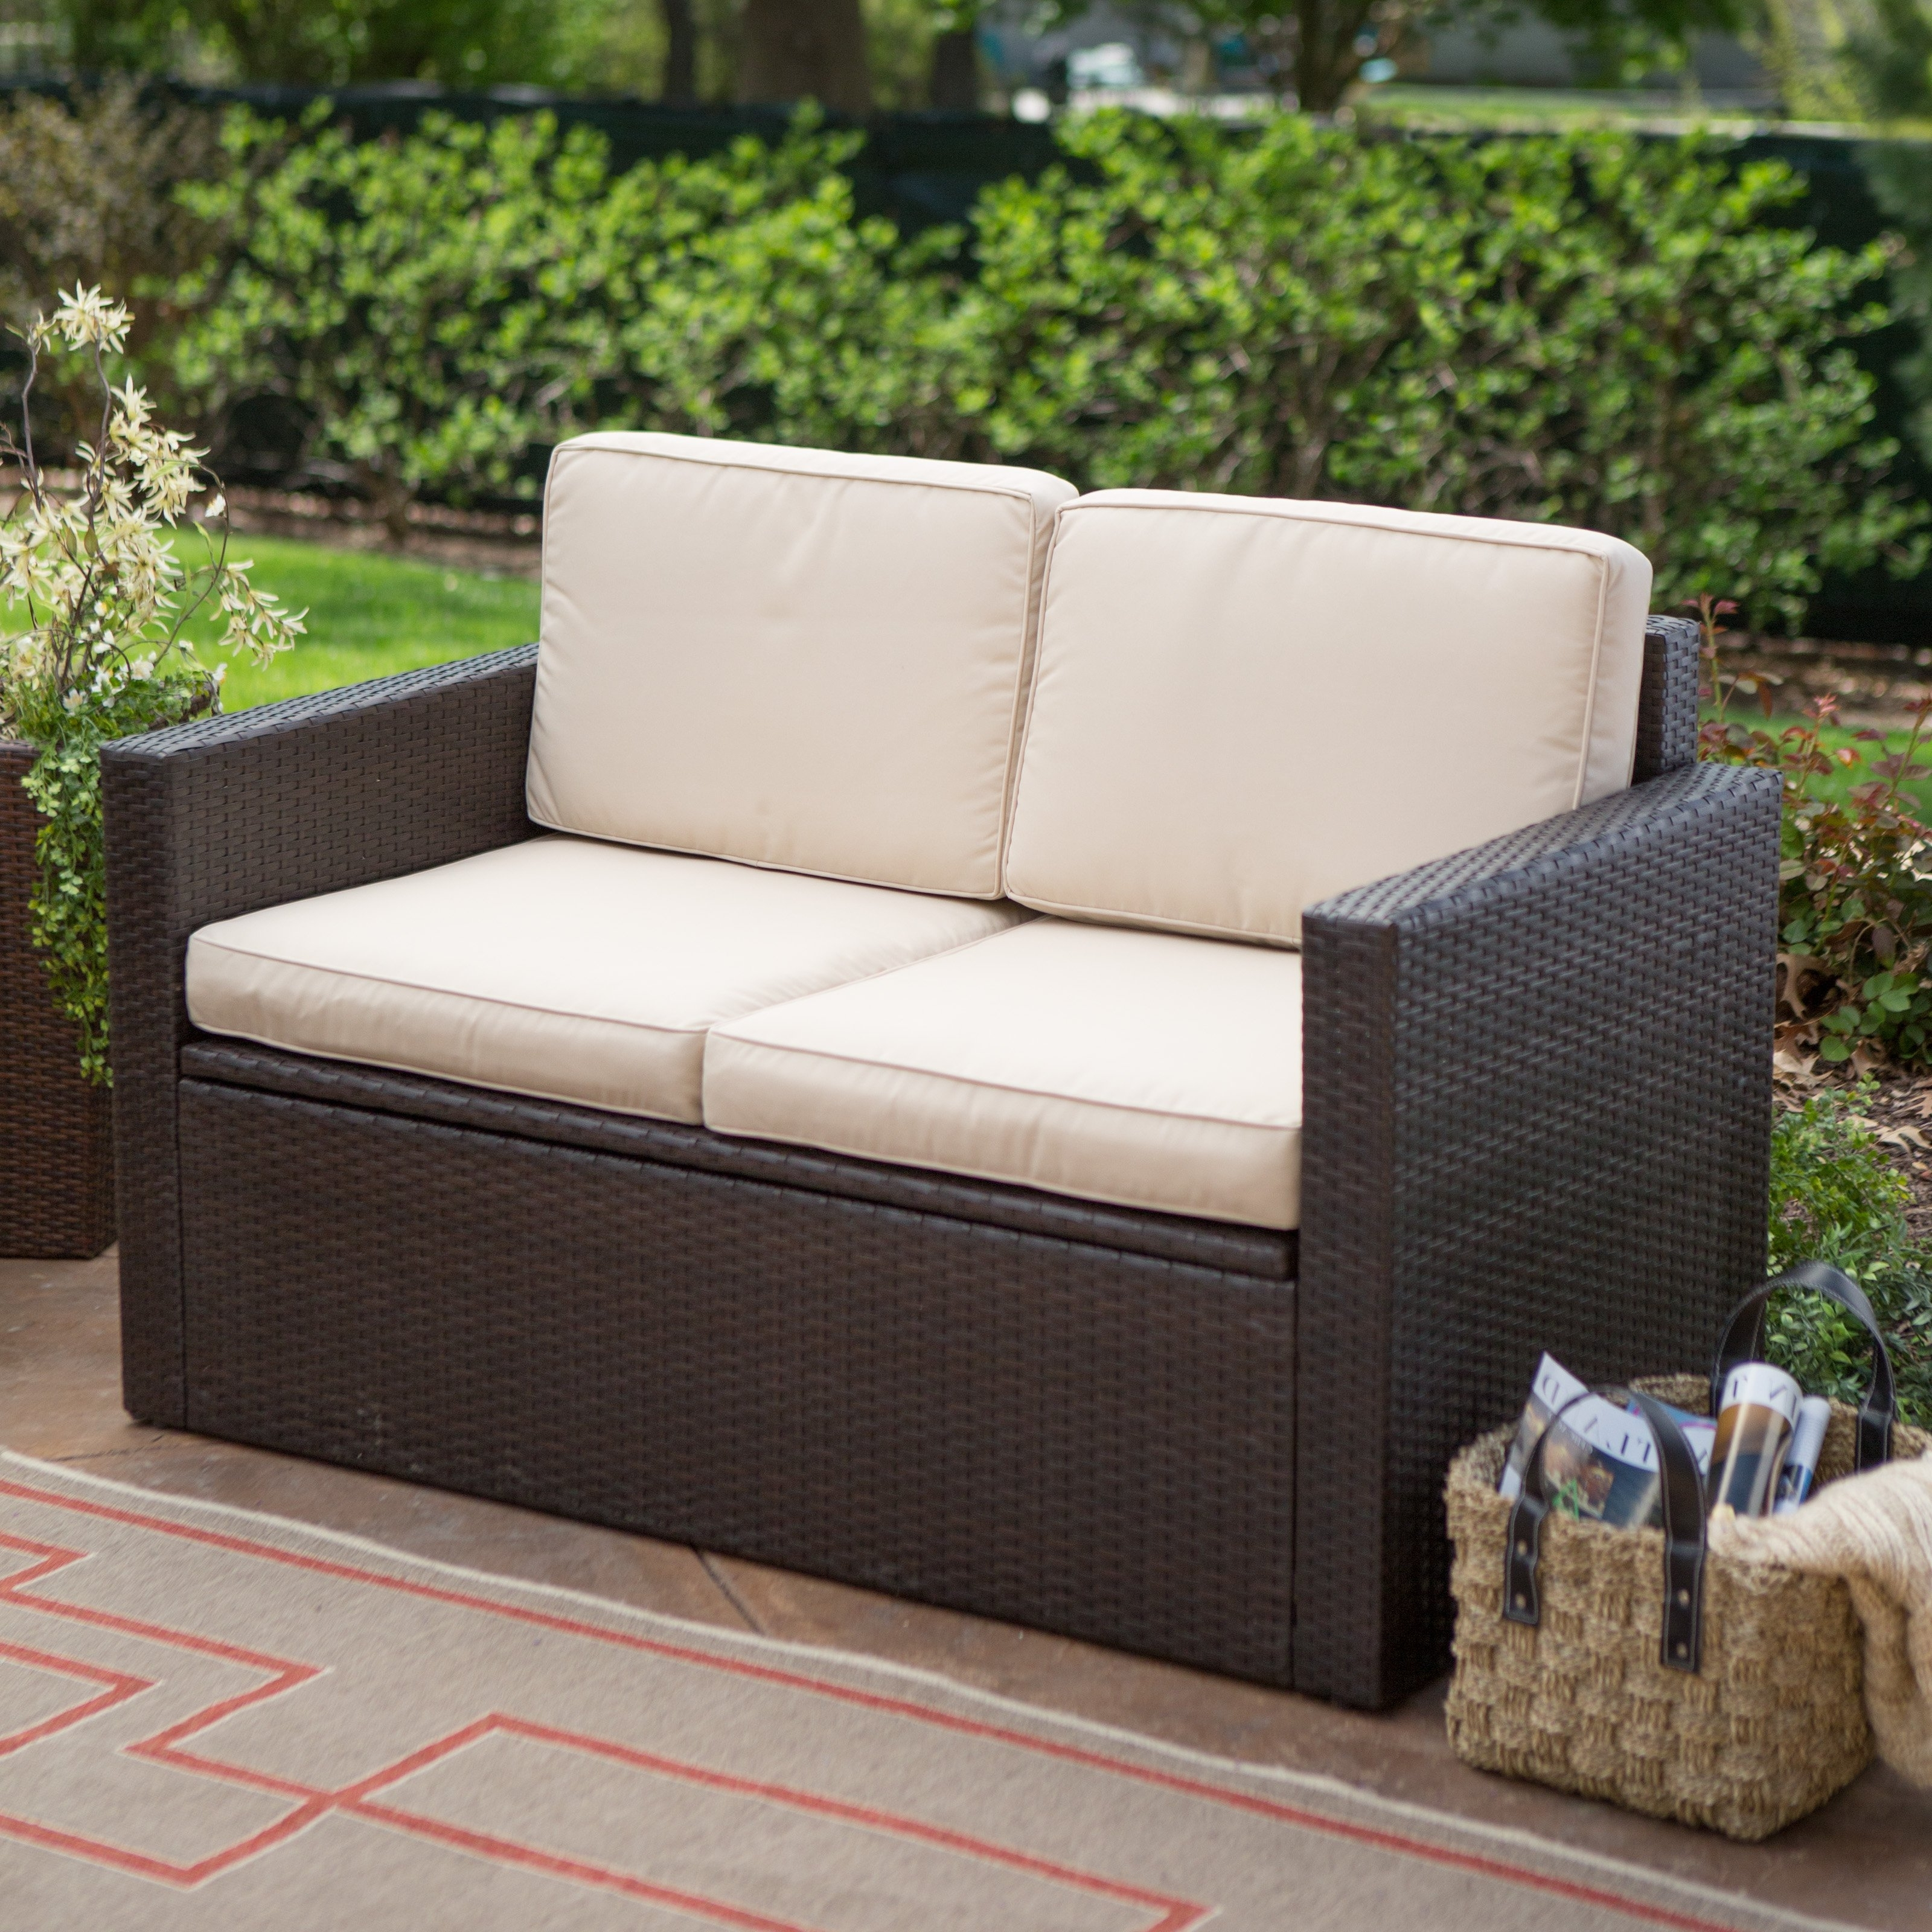 Patio Conversation Sets With Storage For Famous Coral Coast Berea Wicker 4 Piece Conversation Set With Storage (View 8 of 15)